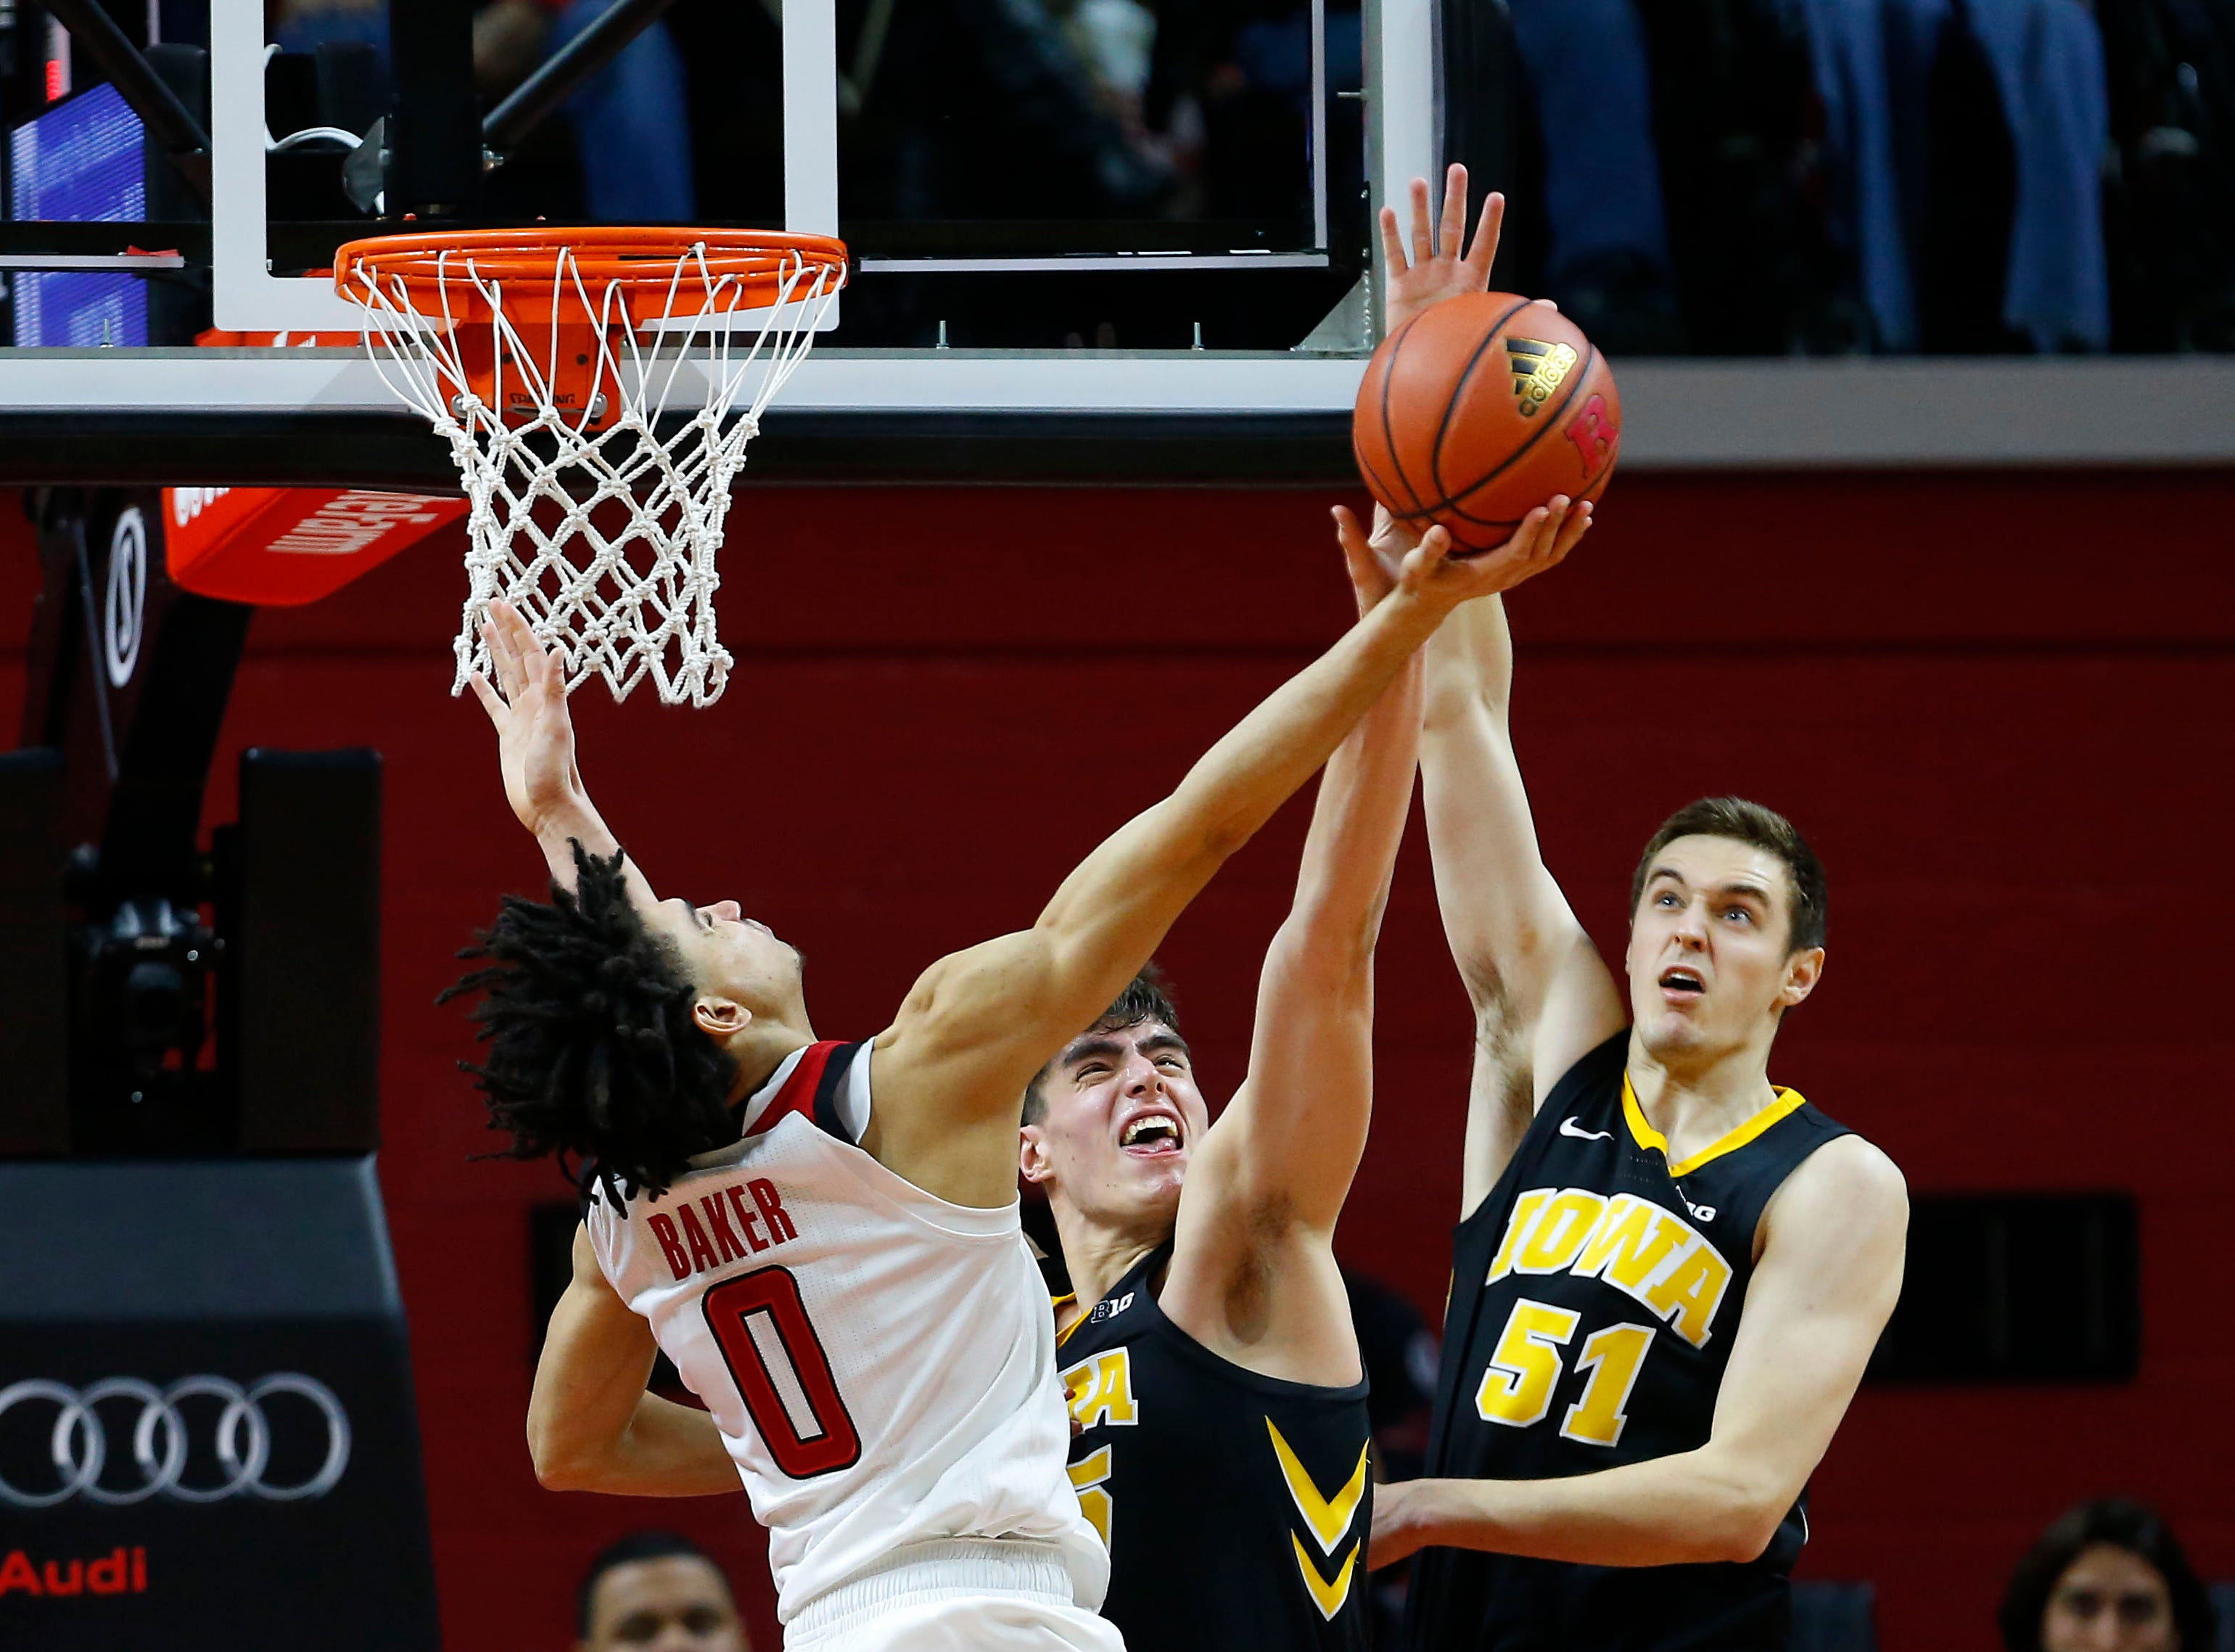 Iowa Hawkeyes forward Luka Garza (55) and Hawkeyes forward Nicholas Baer (51) defend against Rutgers Scarlet Knights guard Geo Baker (0) during the second half at Rutgers Athletic Center (RAC). Mandatory Credit: Noah K. Murray-USA TODAY Sports